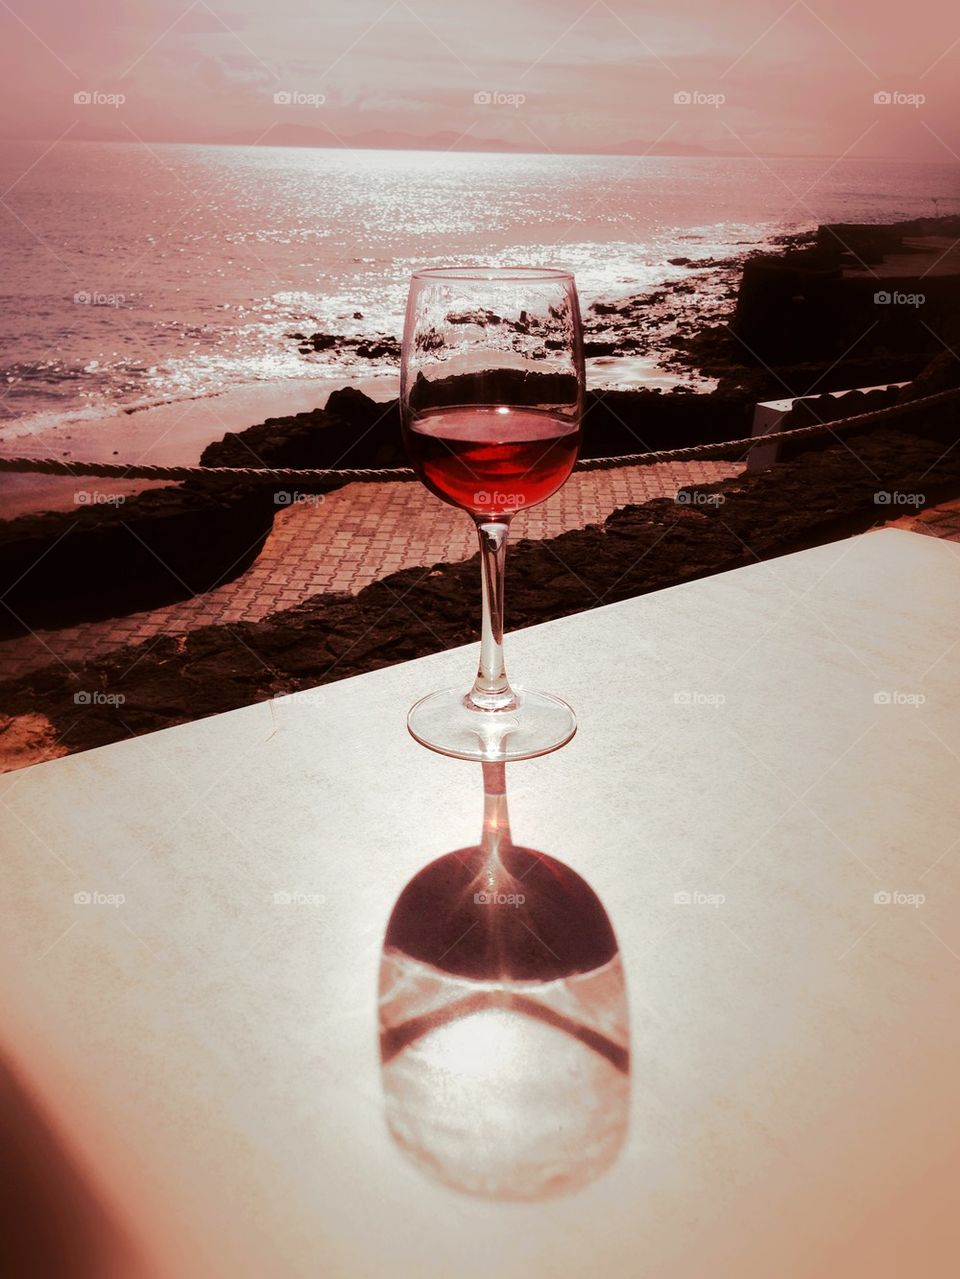 Reflection of red wine glass on table near the beach